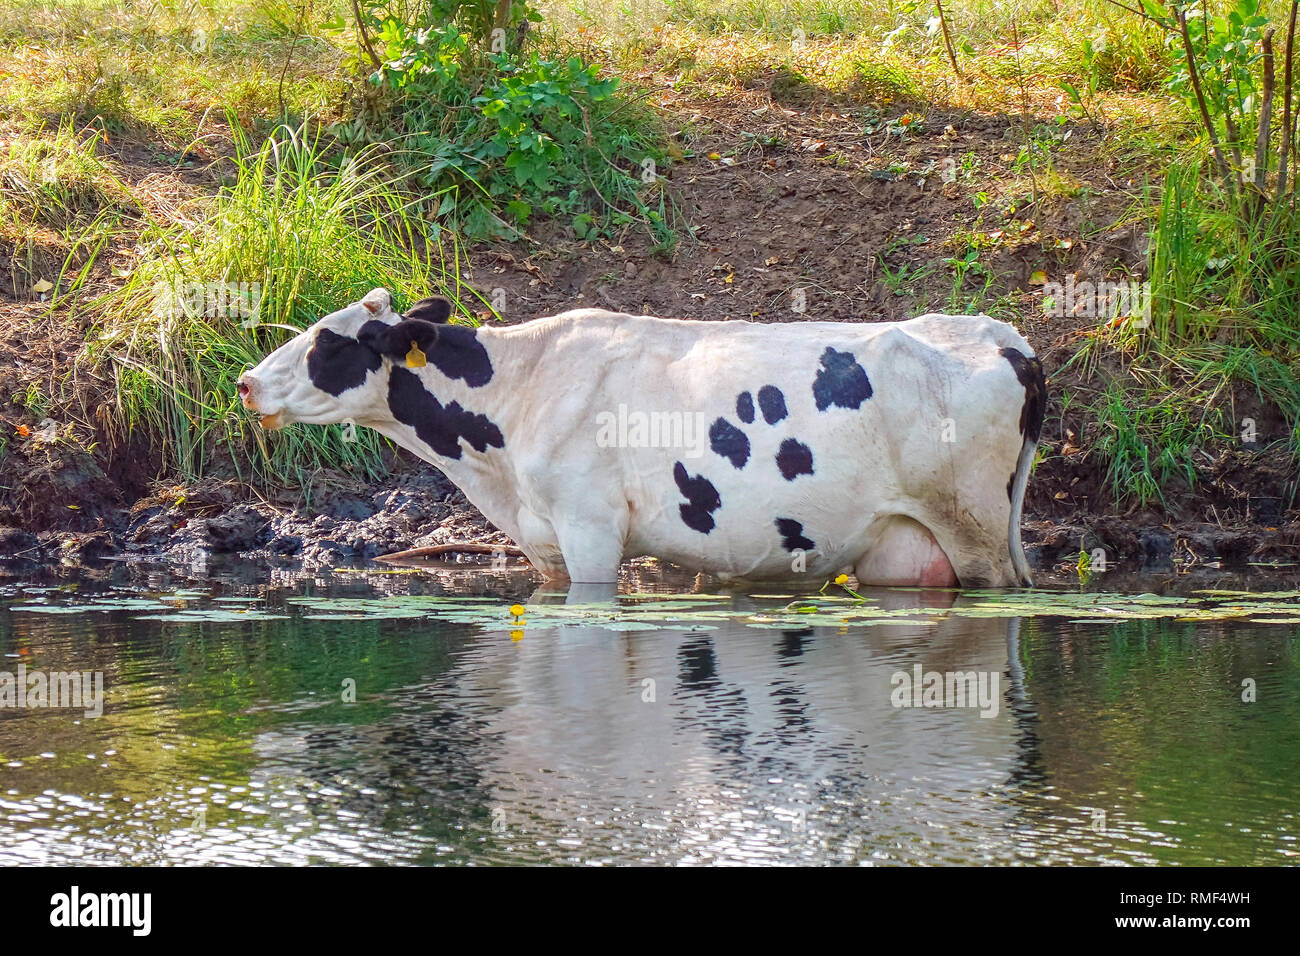 Cows stand in the water on a hot day escaping from the heat - Stock Image